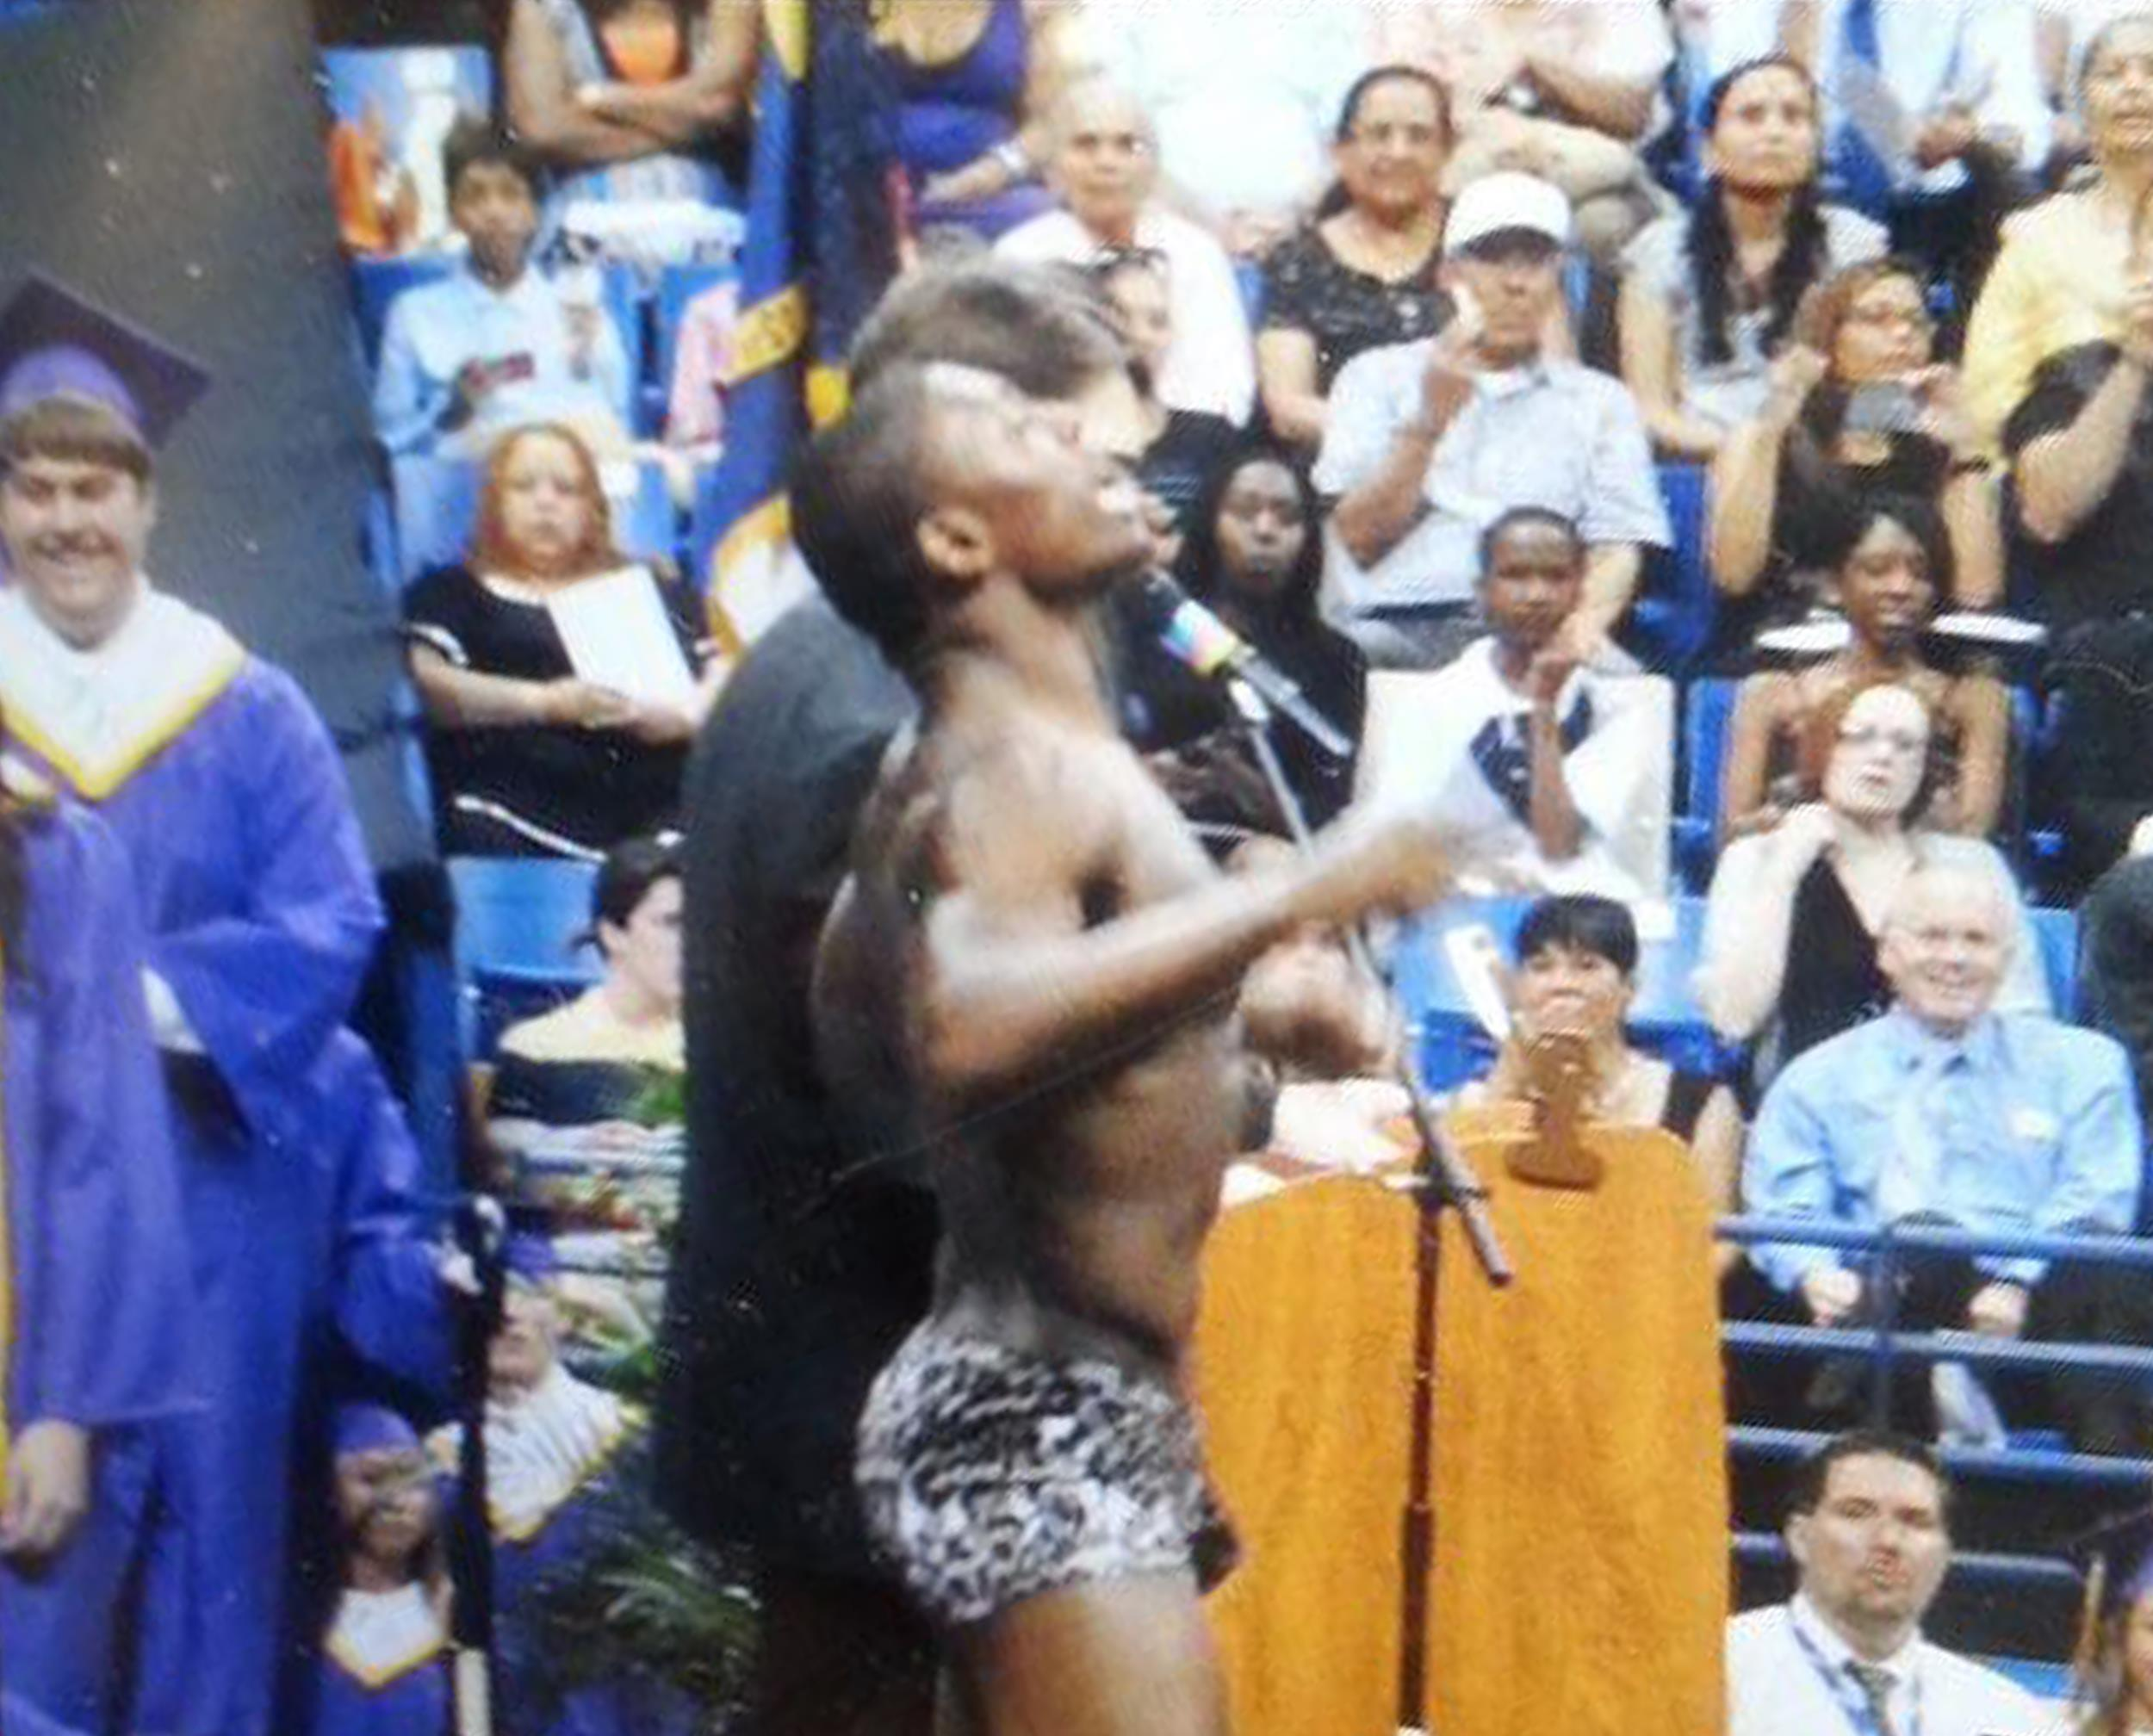 Image: Quinton Murphy stripped down to his underwear during Jack Britt High School graduation in Fayetteville, N.C.